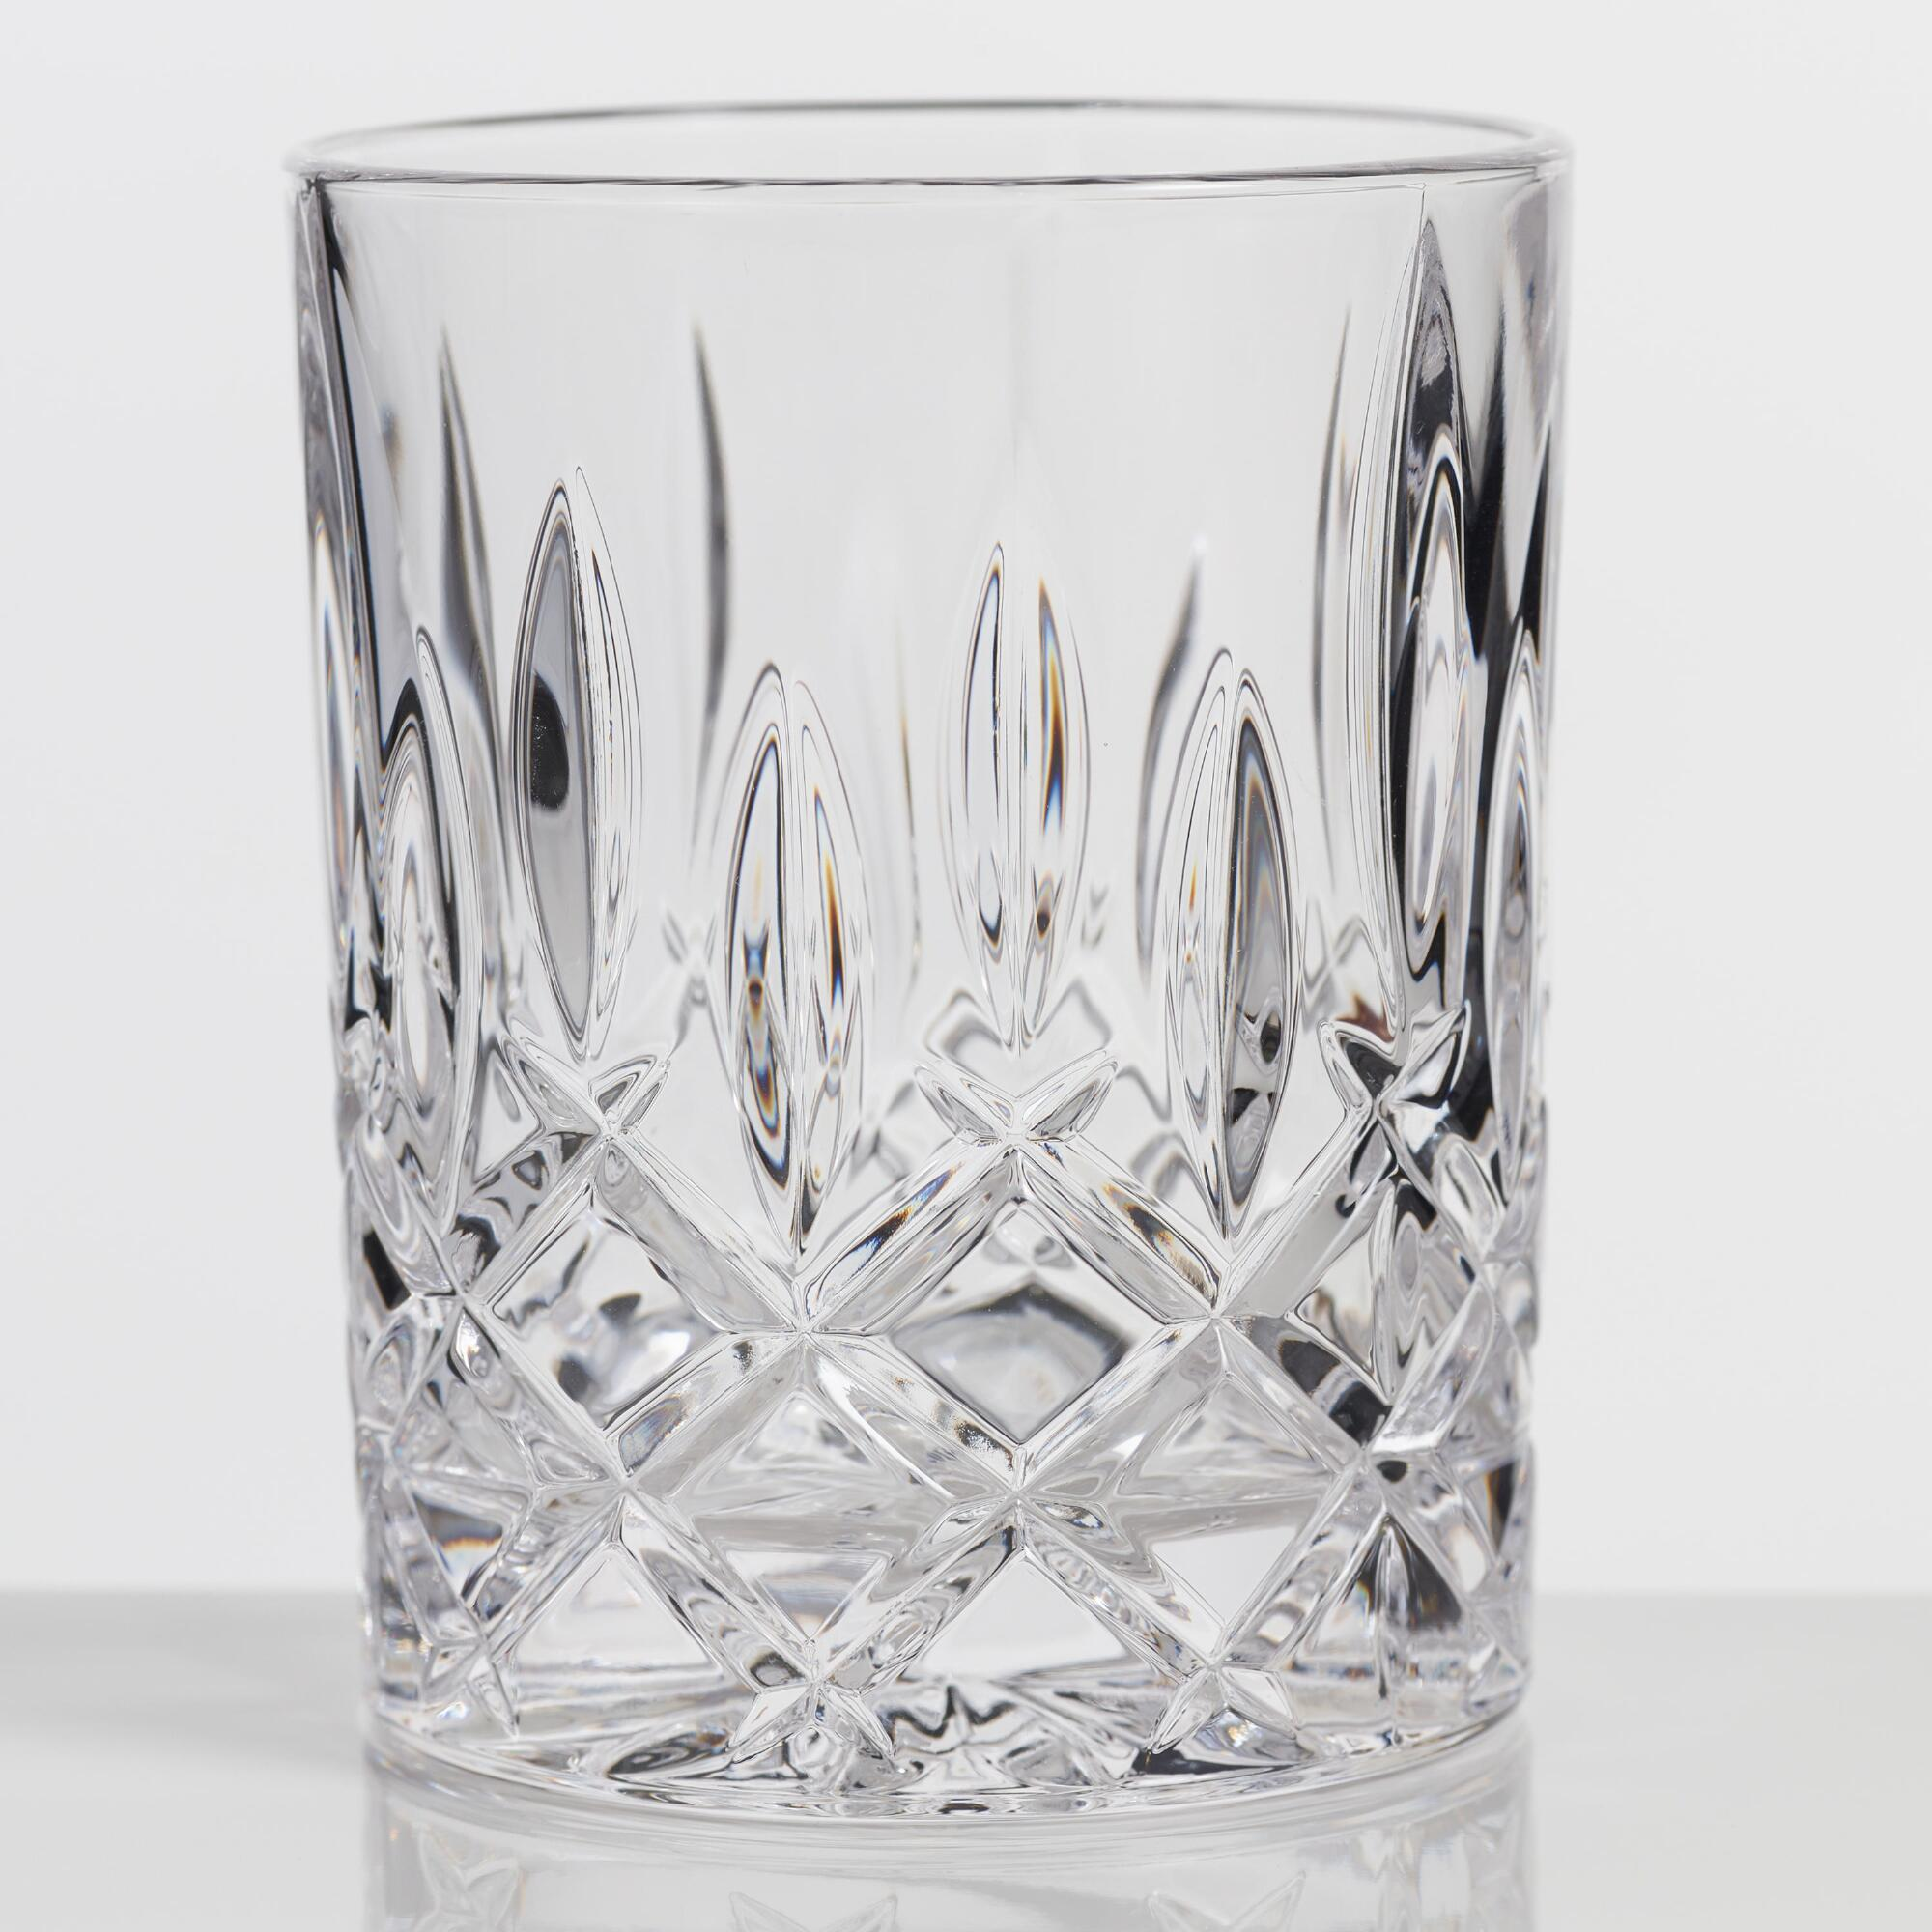 Nachtmann Noblesse Cut Glass Whiskey Glasses Set of 4 by World Market